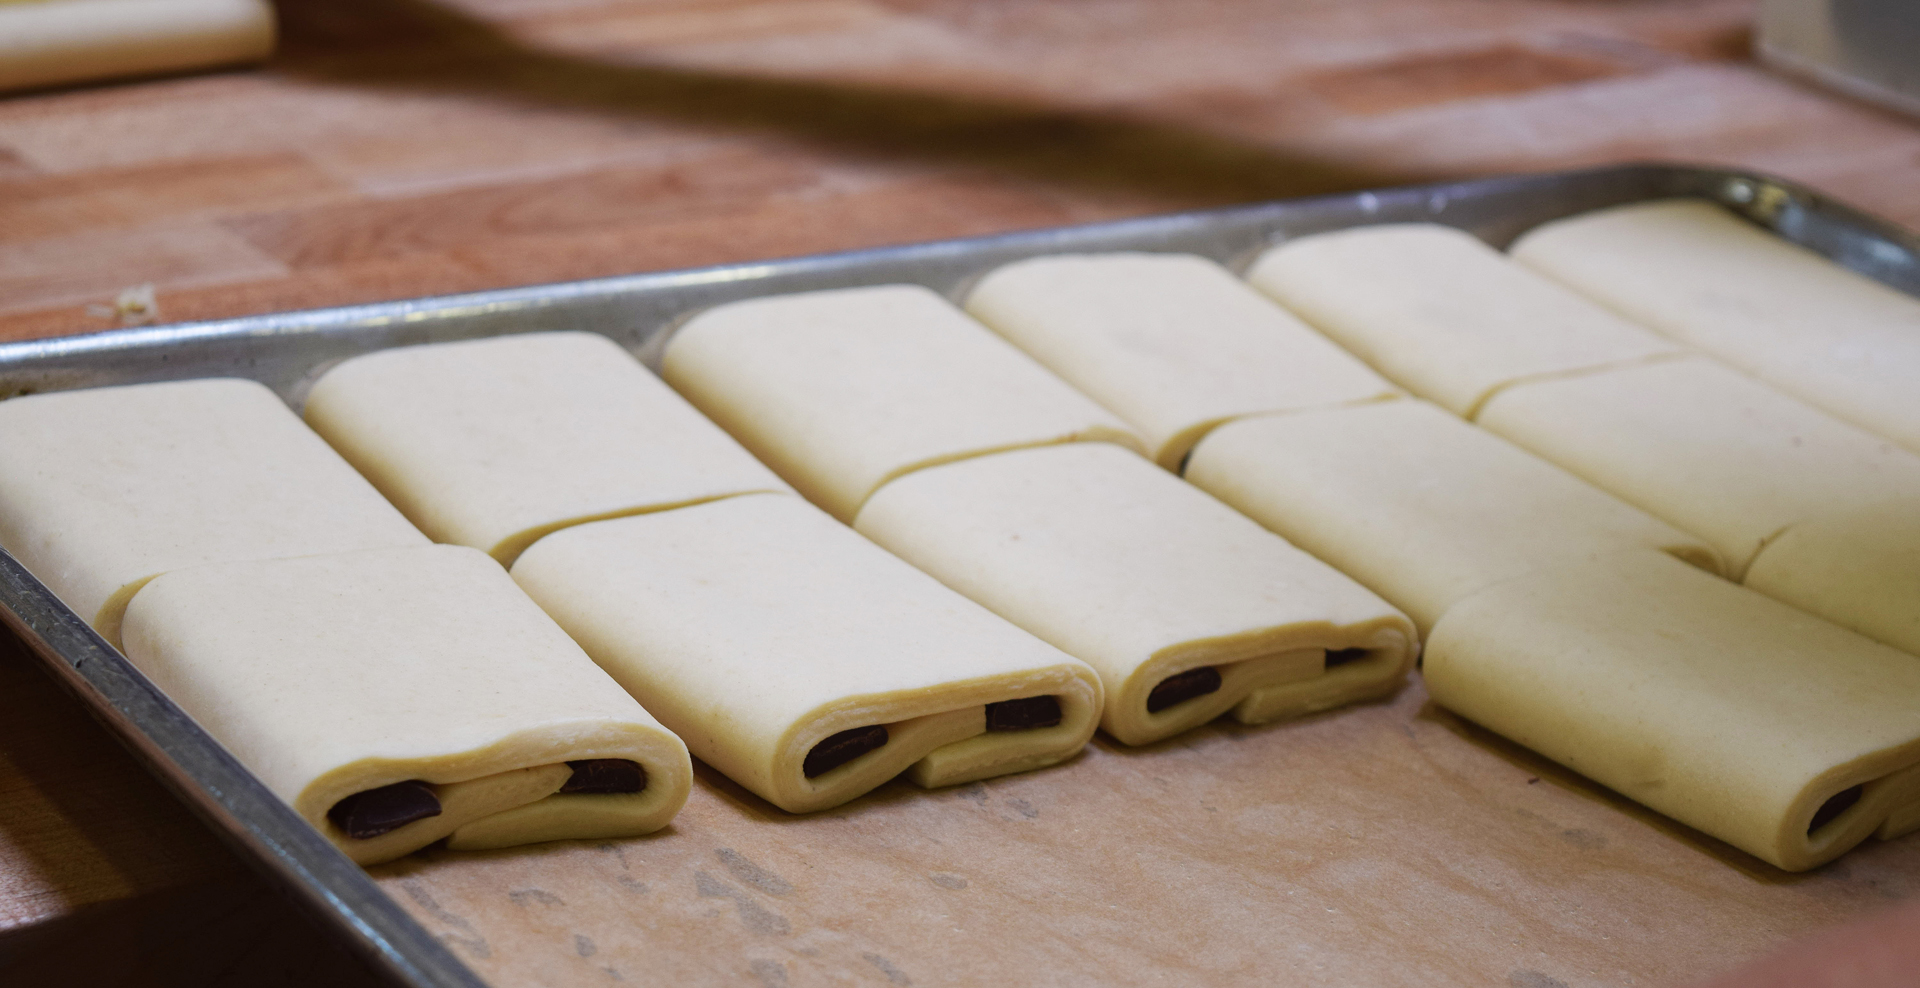 Croissants stuffed with chocolate await their time in the oven.